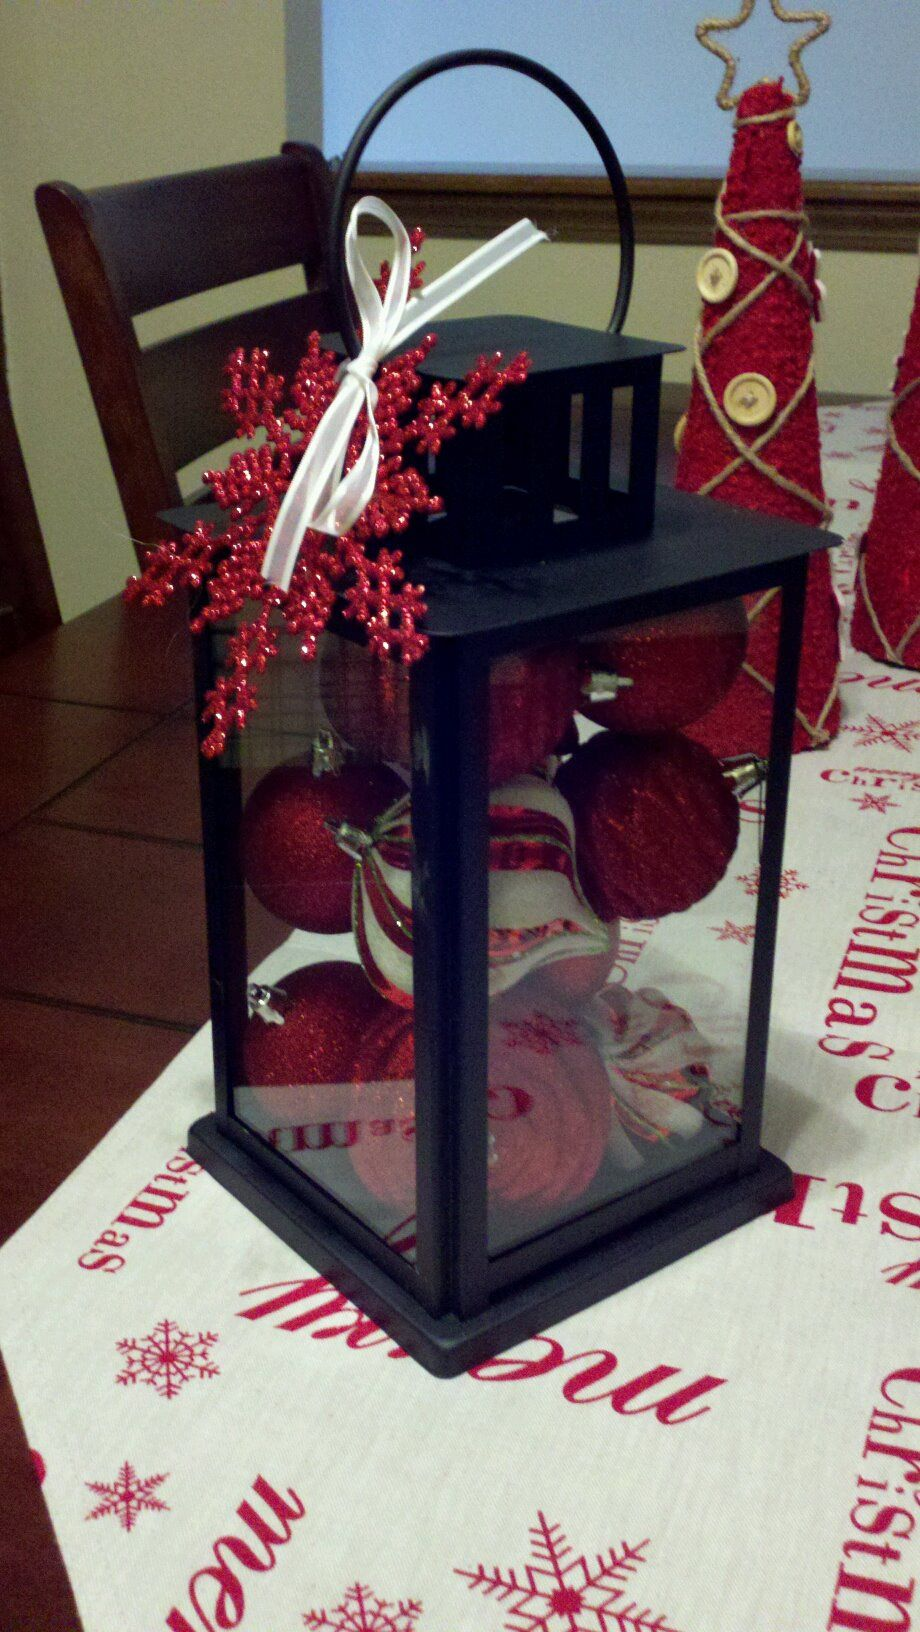 Lantern from Lowes for $1.50 filled with Christmas ornaments already on hand! I can't believe lanterns this cute are that cheap!